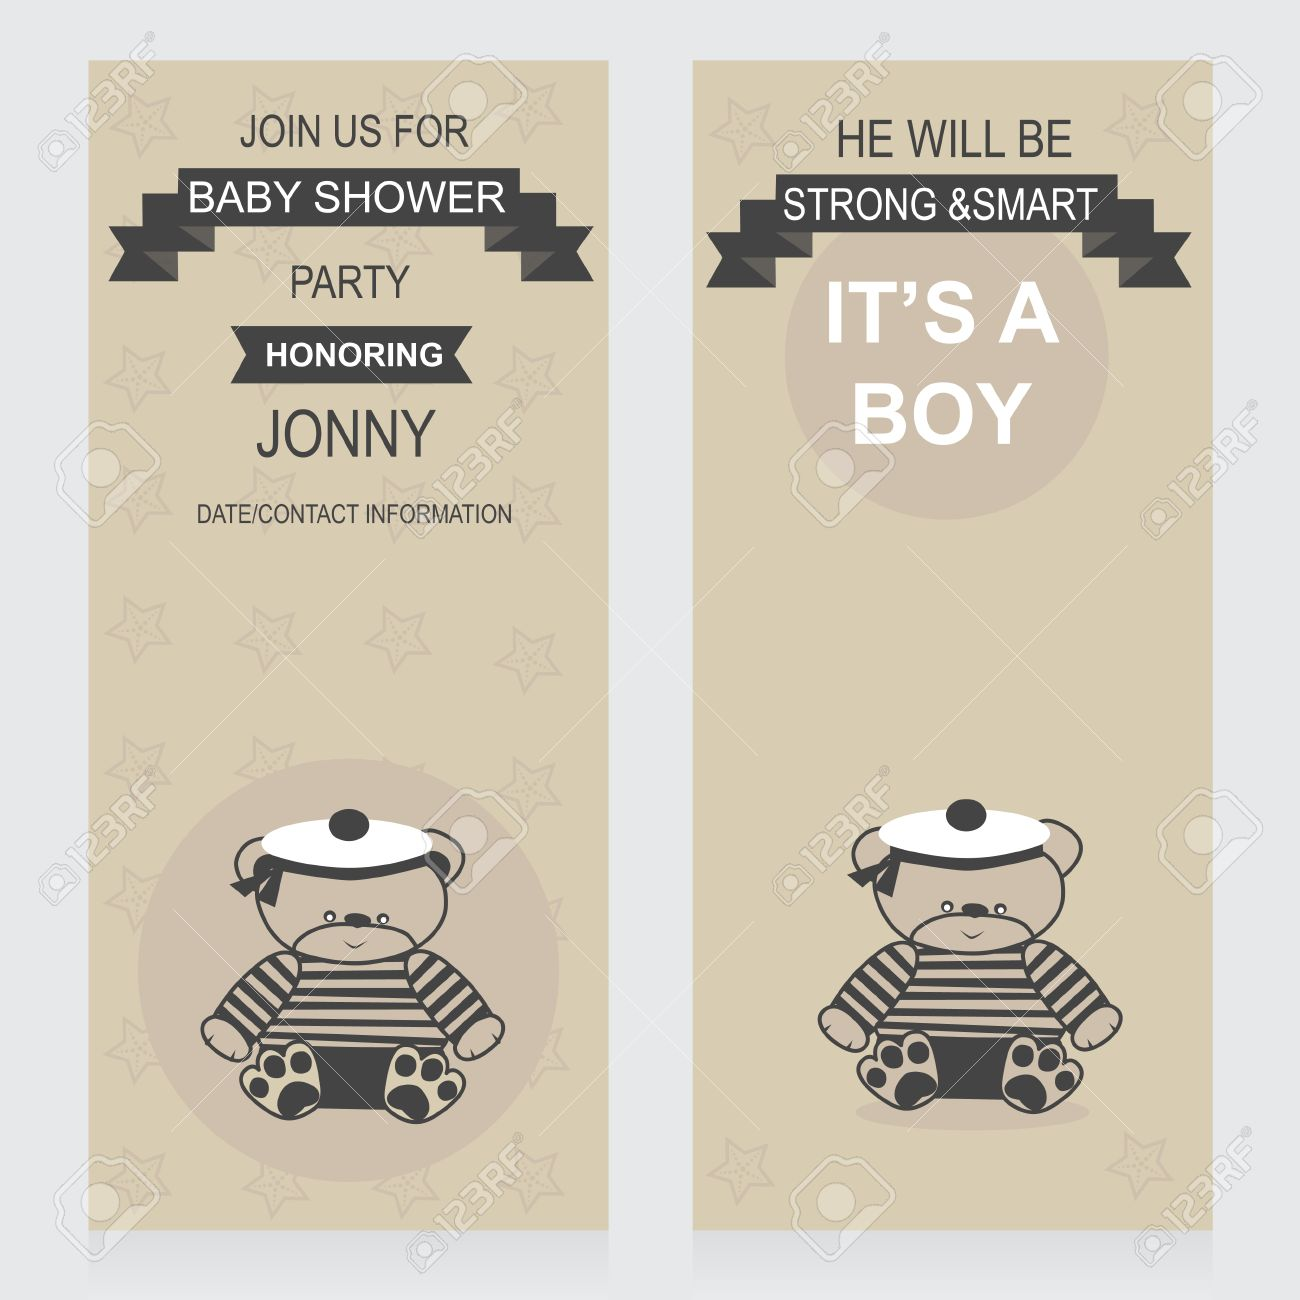 Invitations Template For Baby Shower Party Baby Boy Sailor Arrival ...